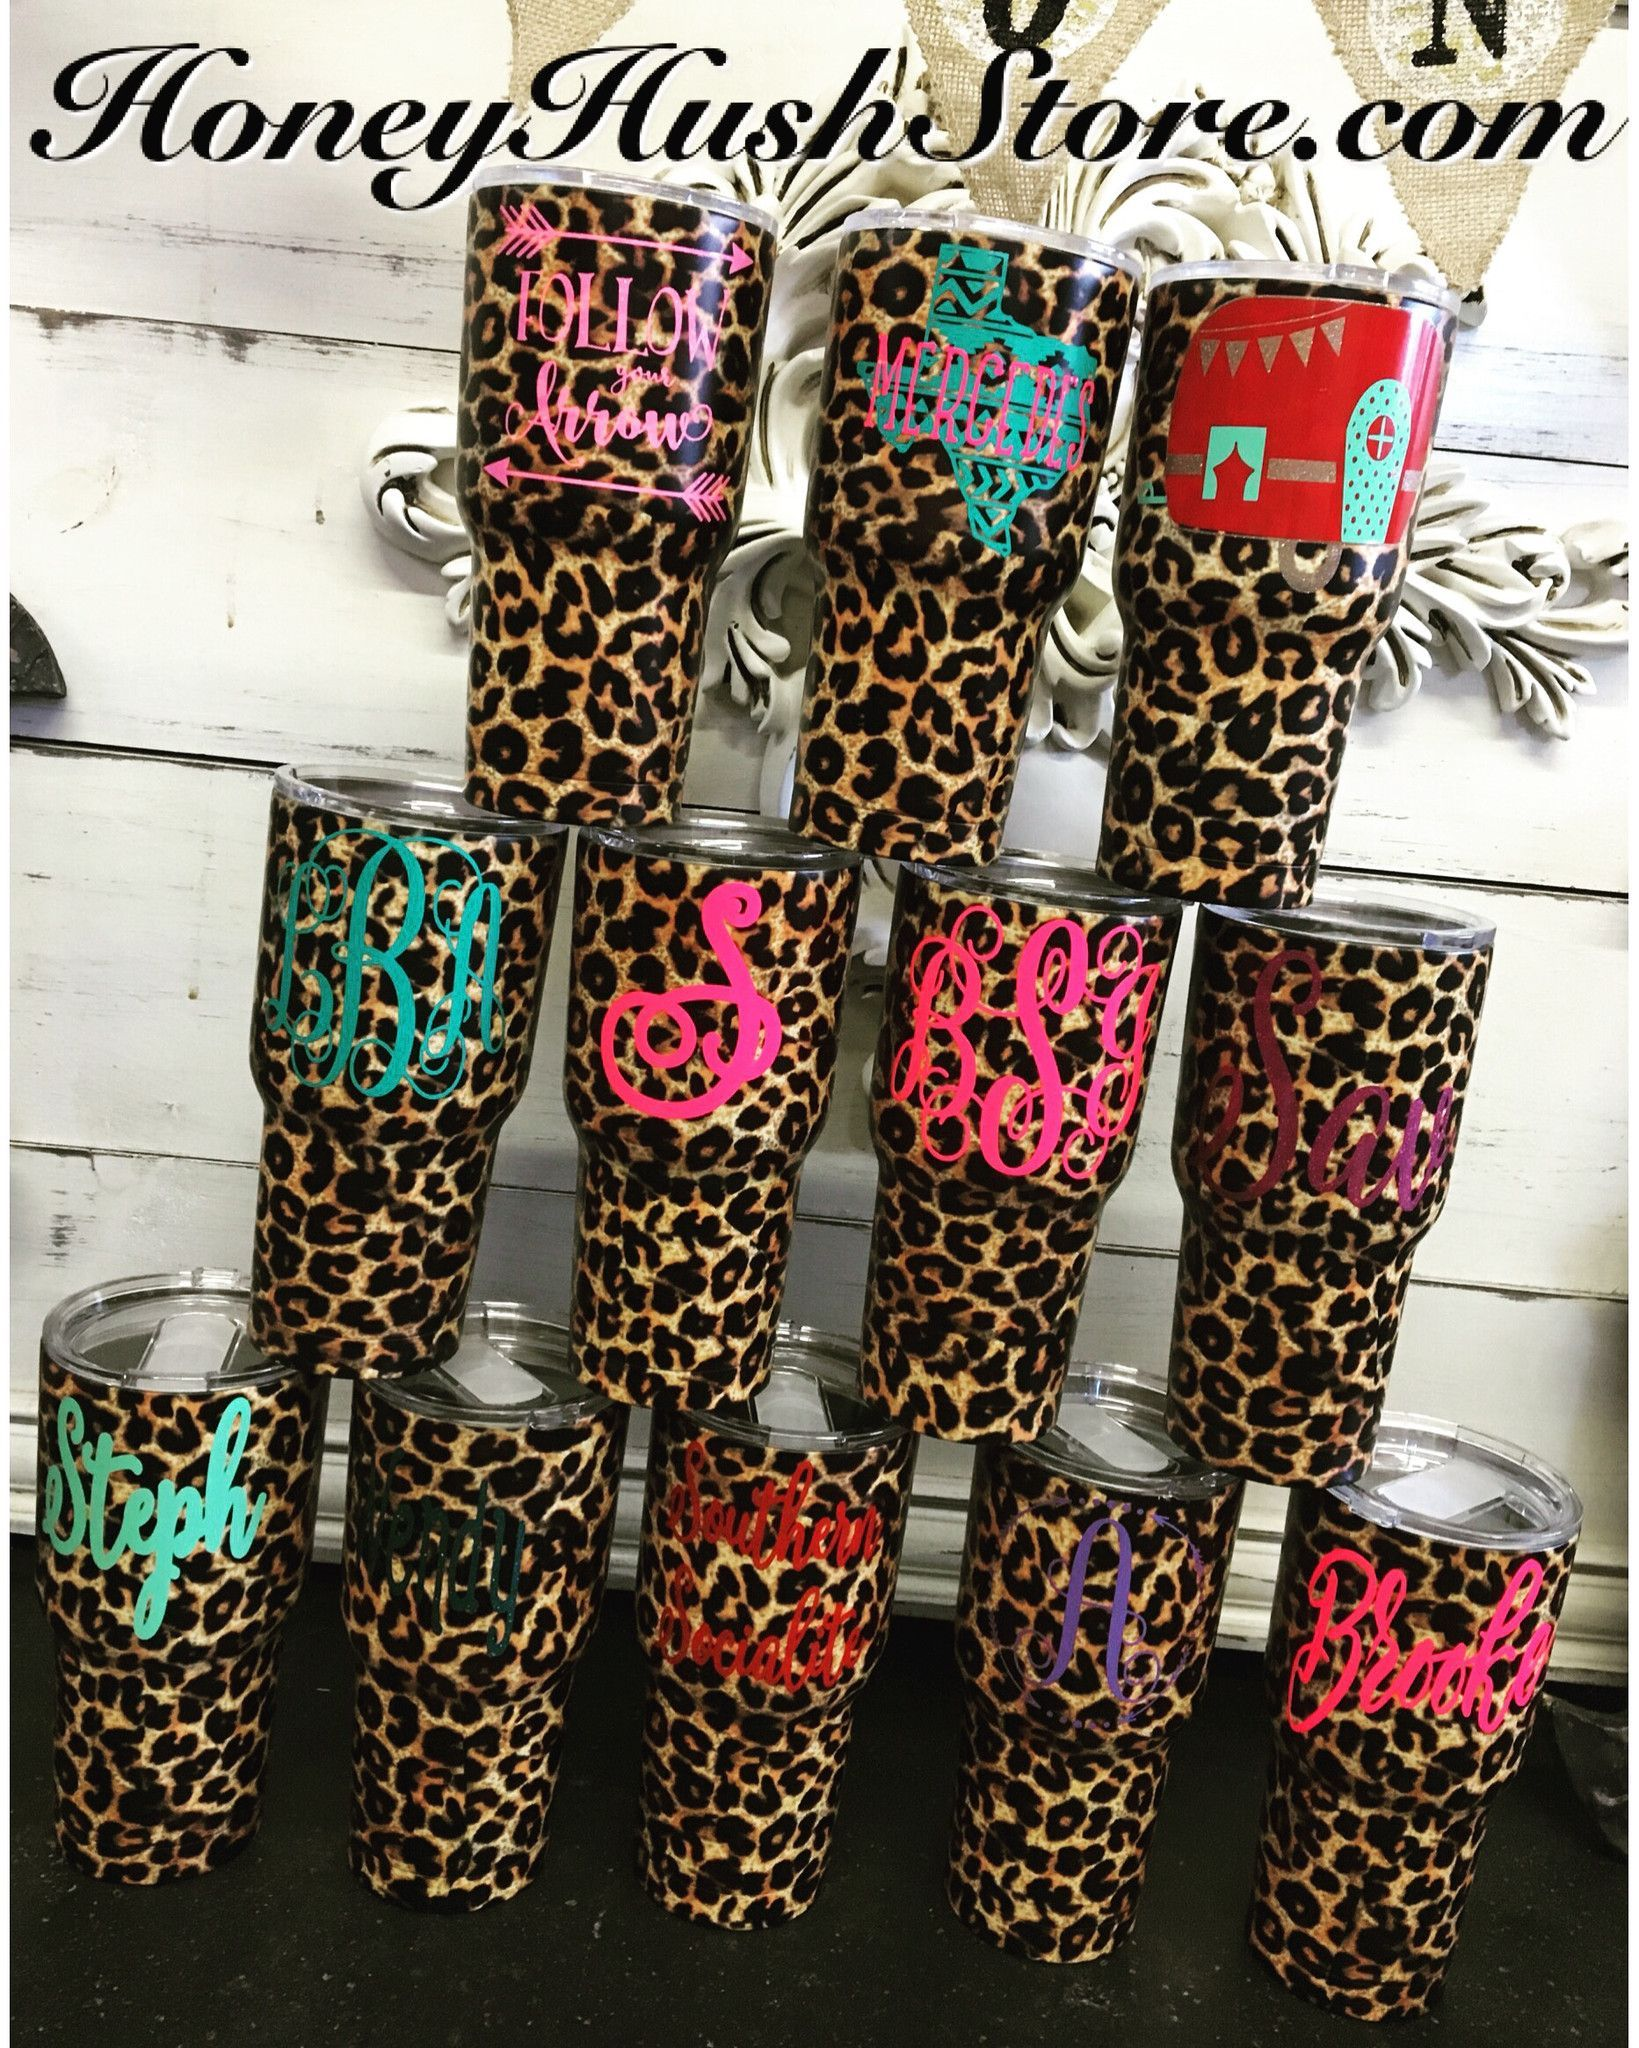 1e97ed8d85f CHEETAH Stainless 30 Oz Tumbler Decals For Yeti Cups, Yeti Decals, Coffee  Tumbler,